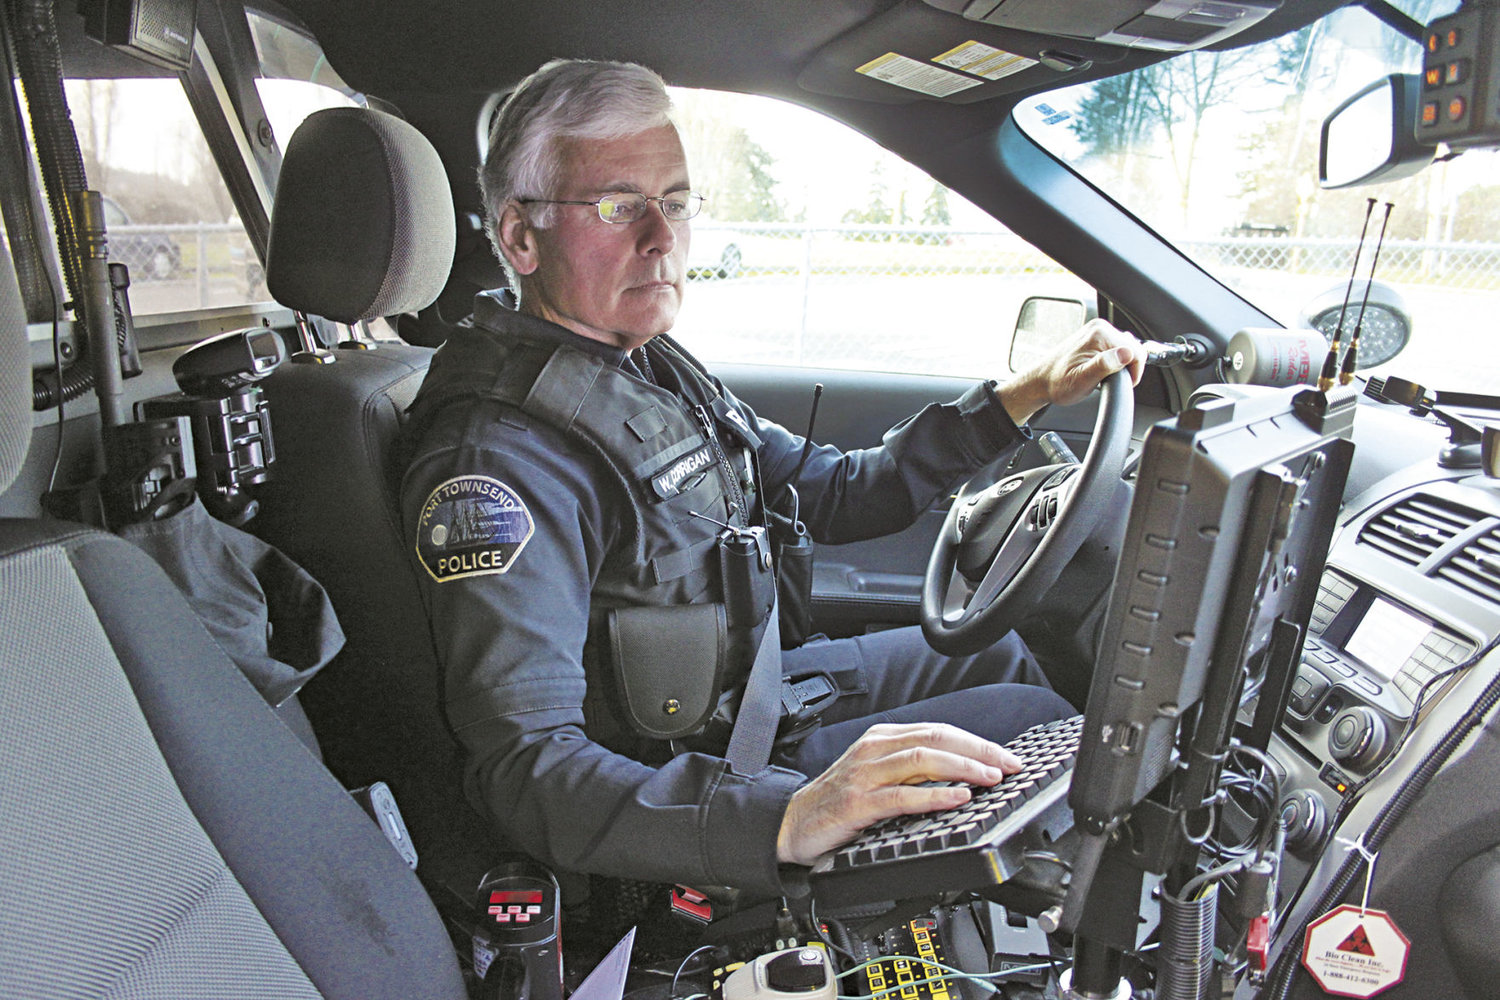 "Officer Bill Corrigan, well known as a Port Townsend Police Department traffic enforcement officer, parks his patrol vehicle to check his computer. ""The number-one cause of vehicle collisions in Port Townsend is following too closely,"" he said. Photo by Kirk Boxleitner"